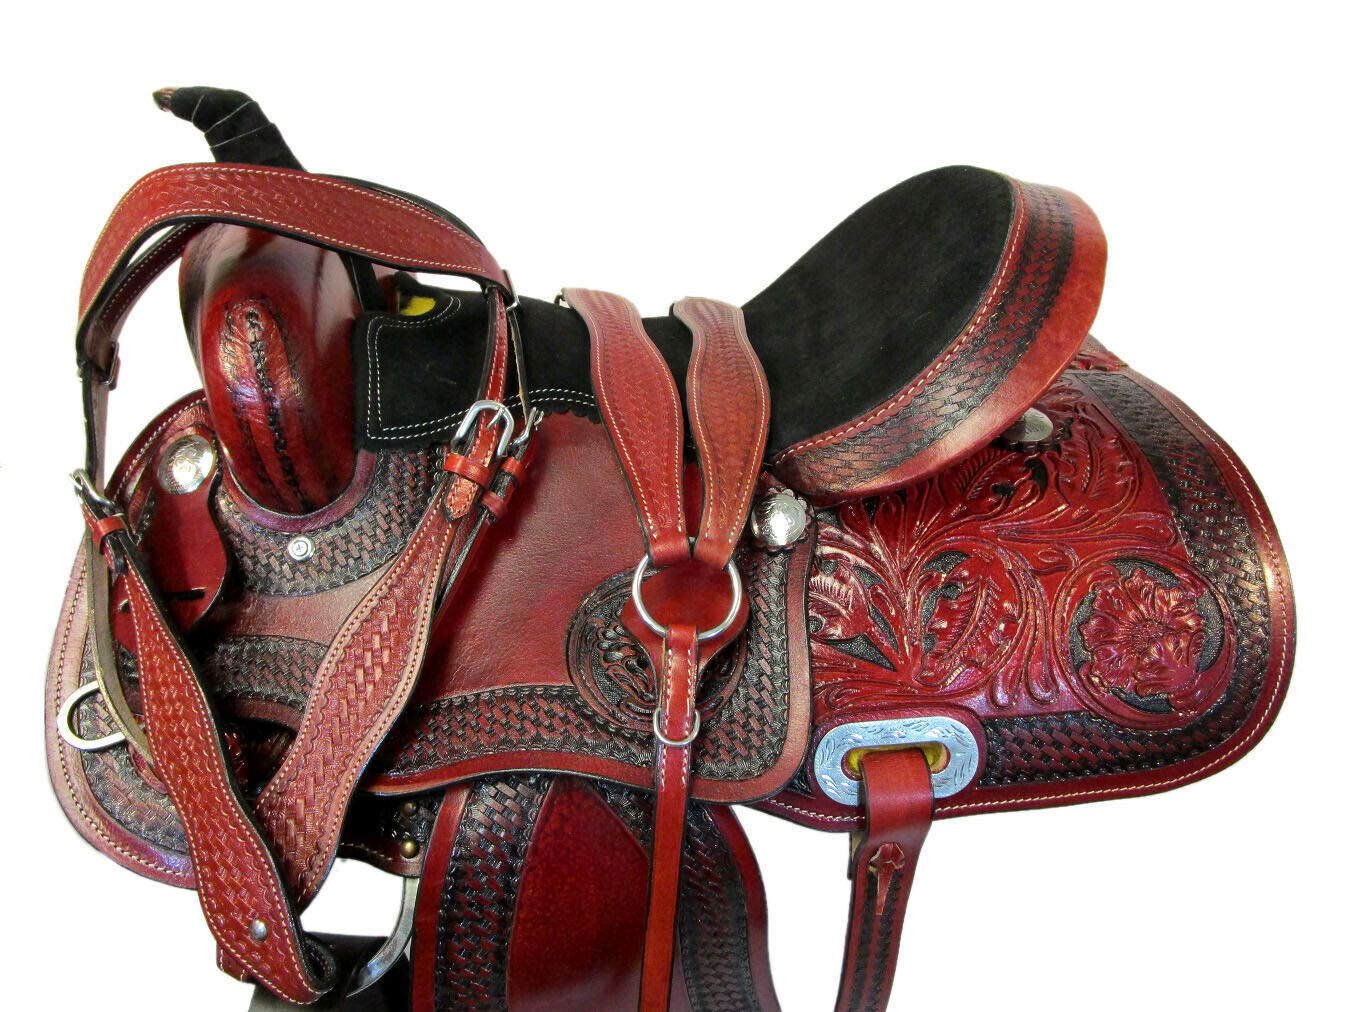 RODEO SHOW WESTERN SADDLE 17 16 PLEASURE TRAIL HORSE ROPING ROPER RANCH TACK SER